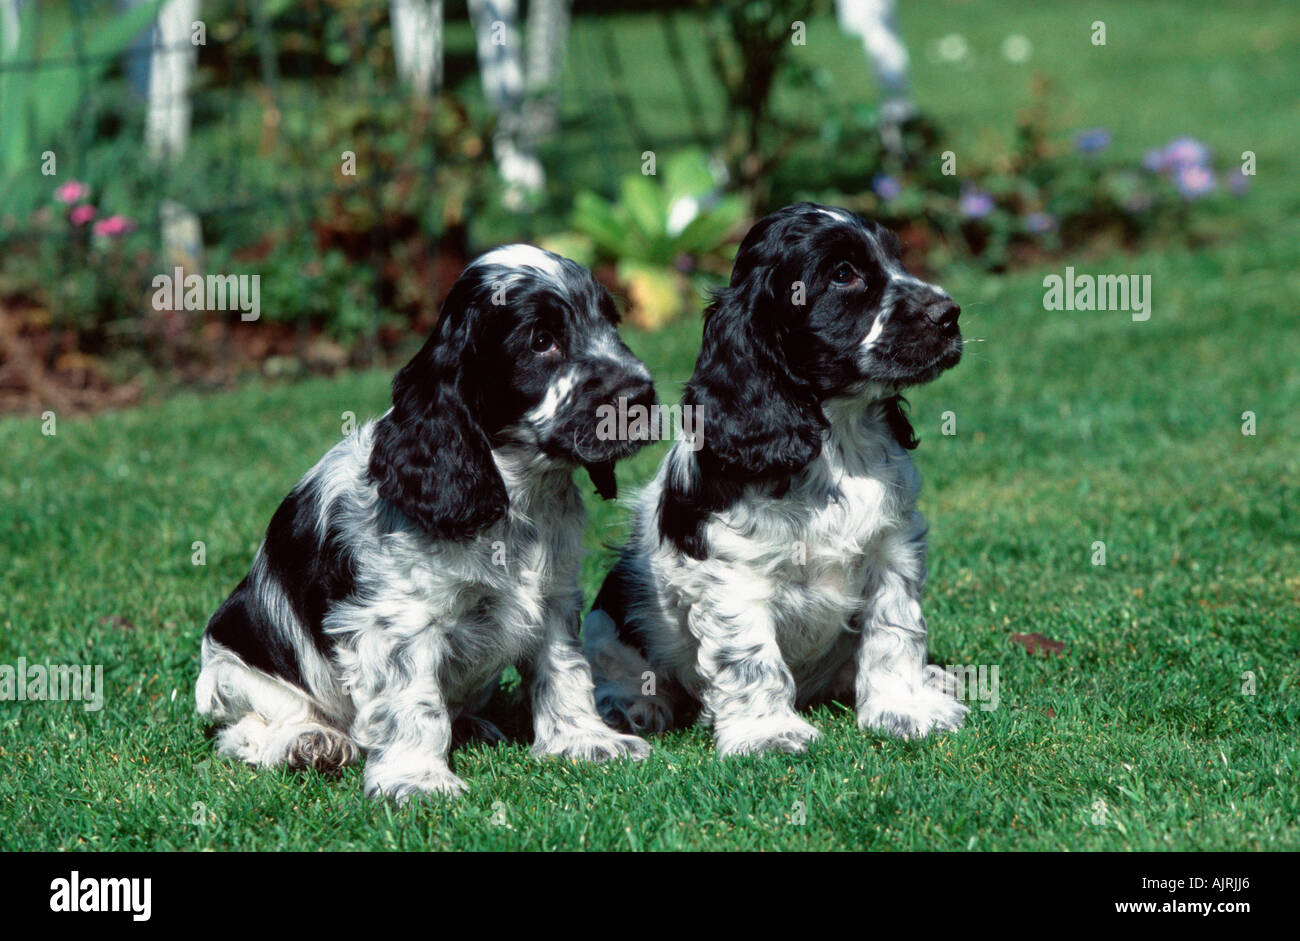 English Cocker Spaniel Puppies 7 Weeks Stock Photo Alamy